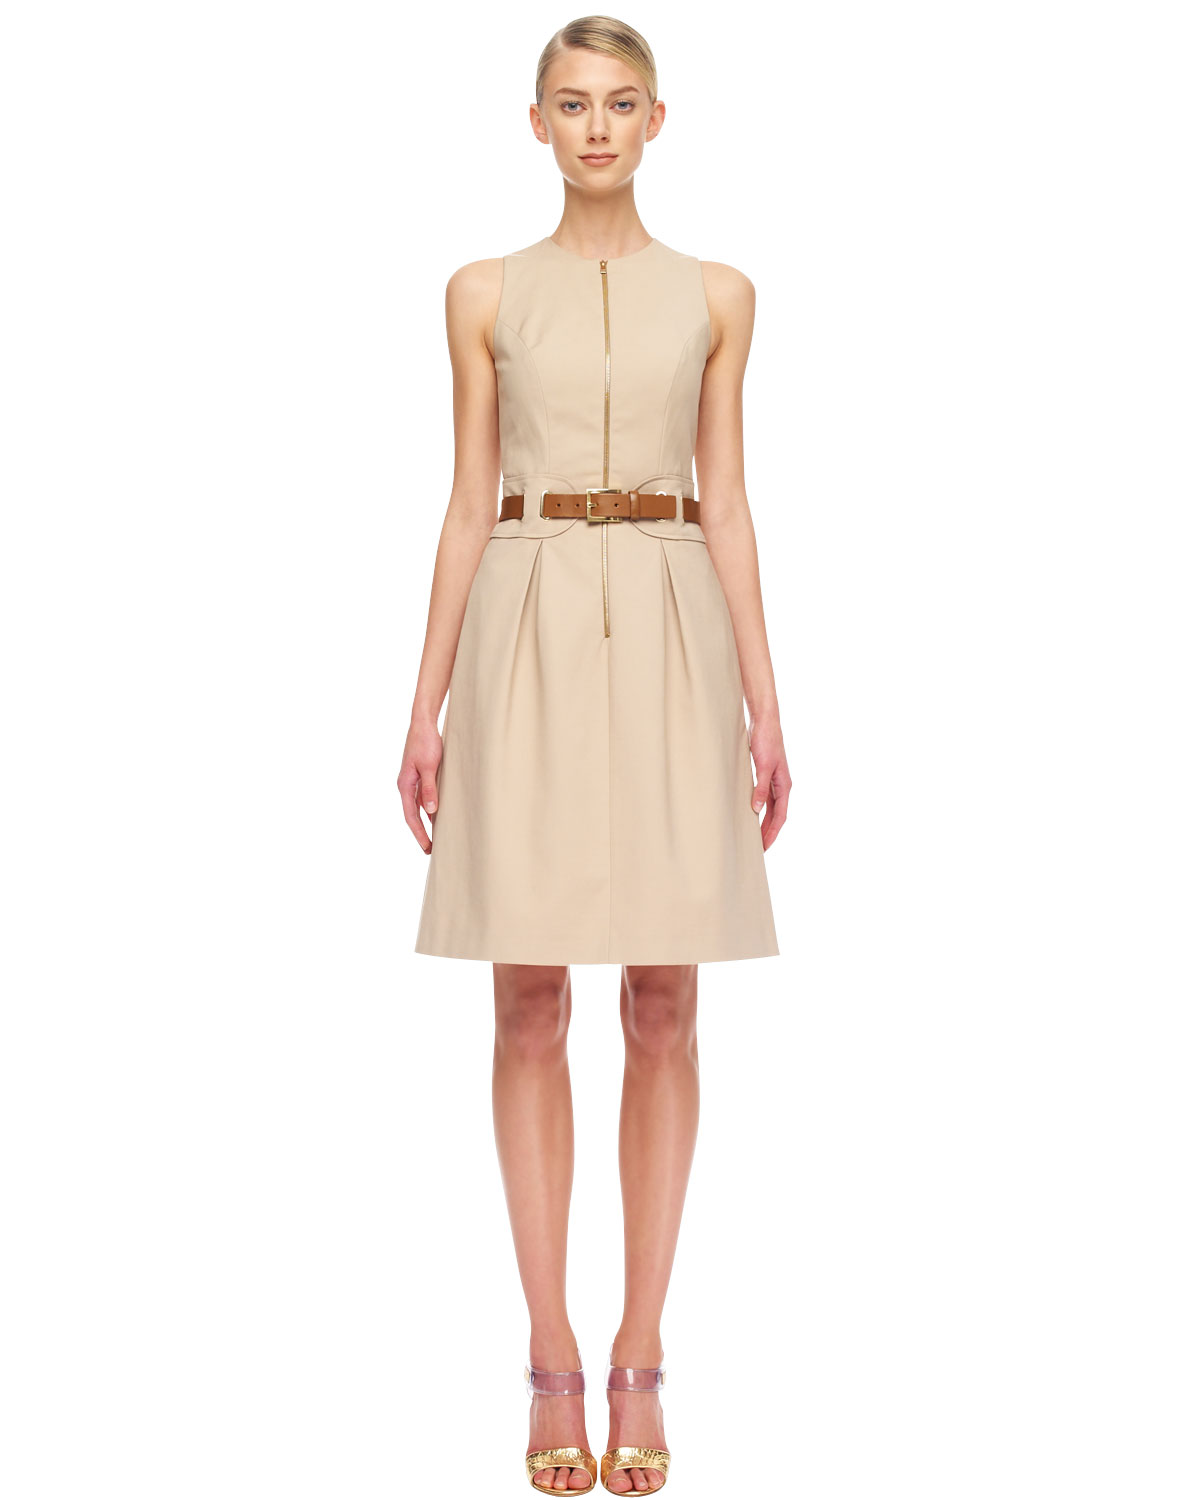 416396dcf68 Michael Kors Belted Twill Dress in Natural - Lyst